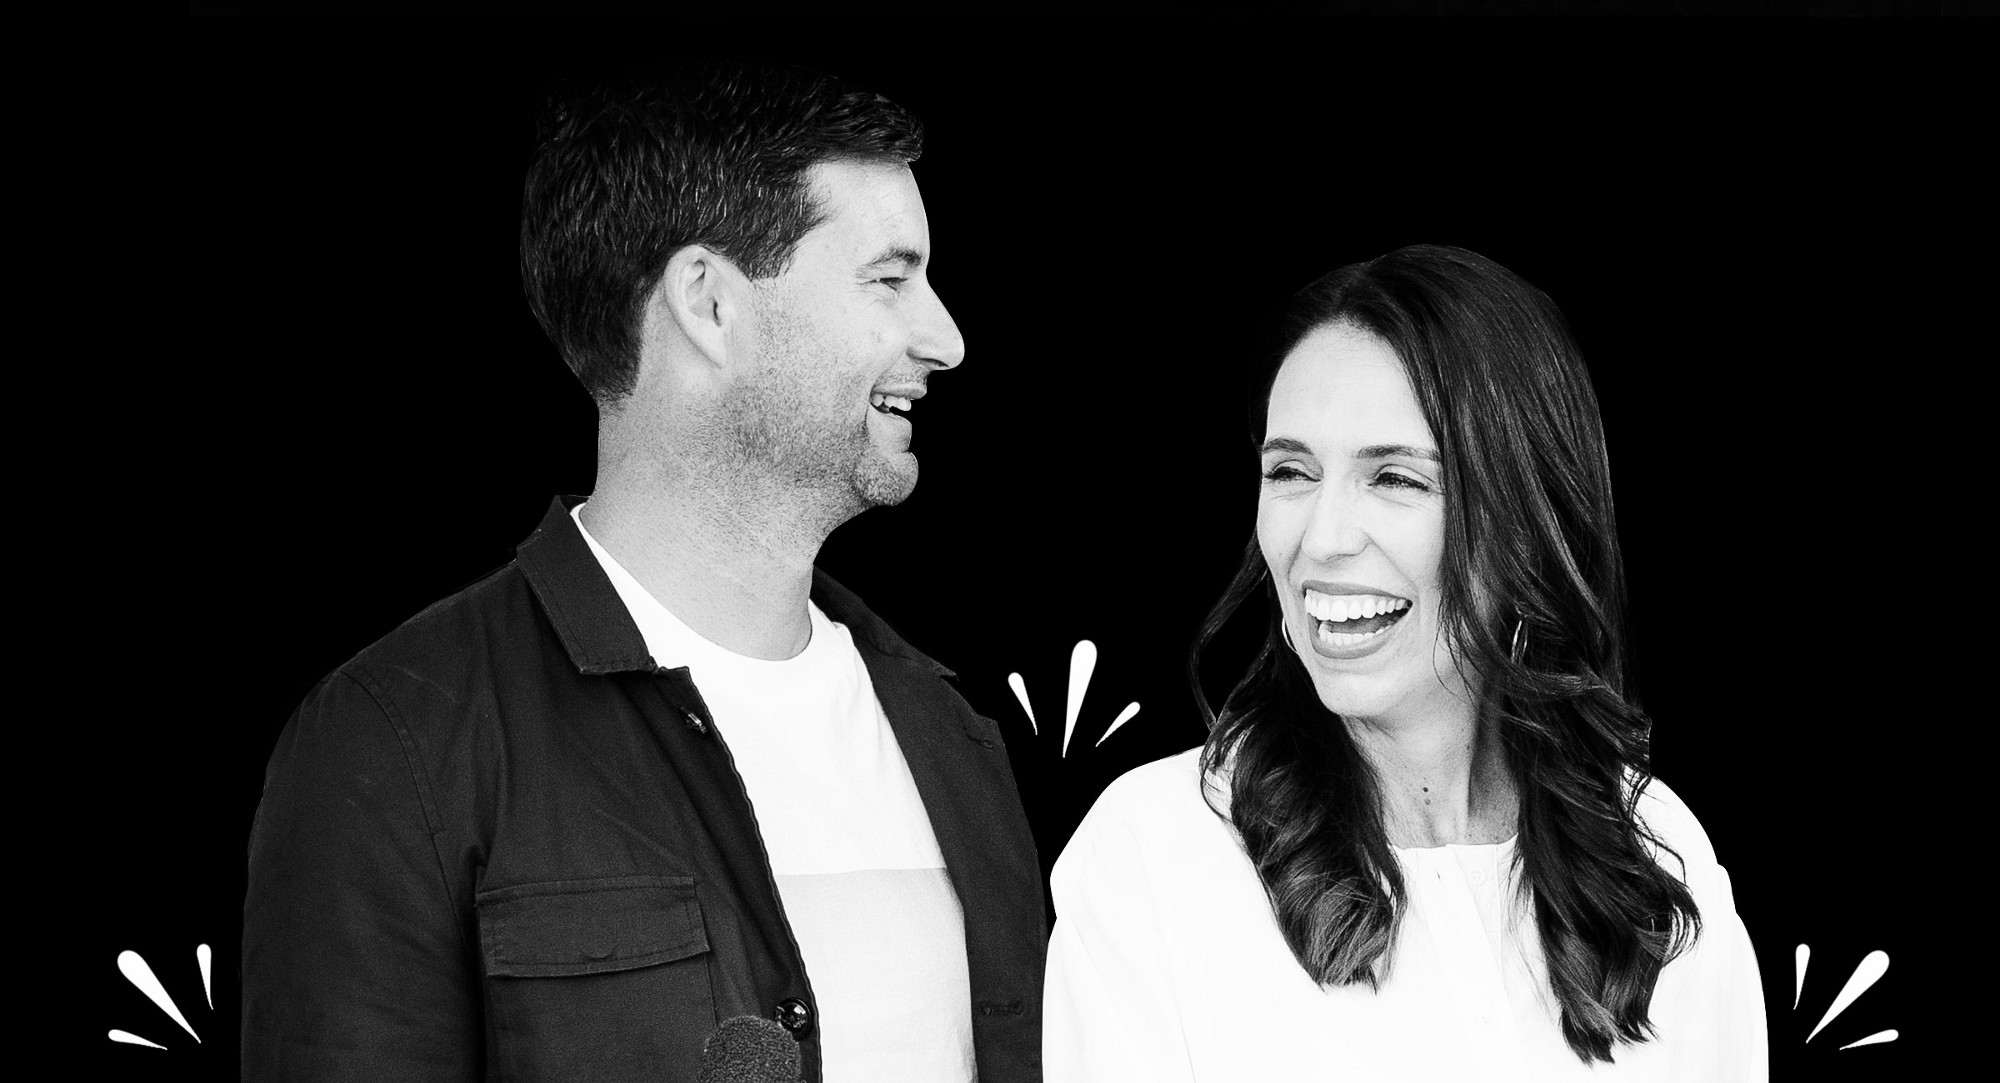 New Zealand PM Jacinda Ardern announces pregnancy